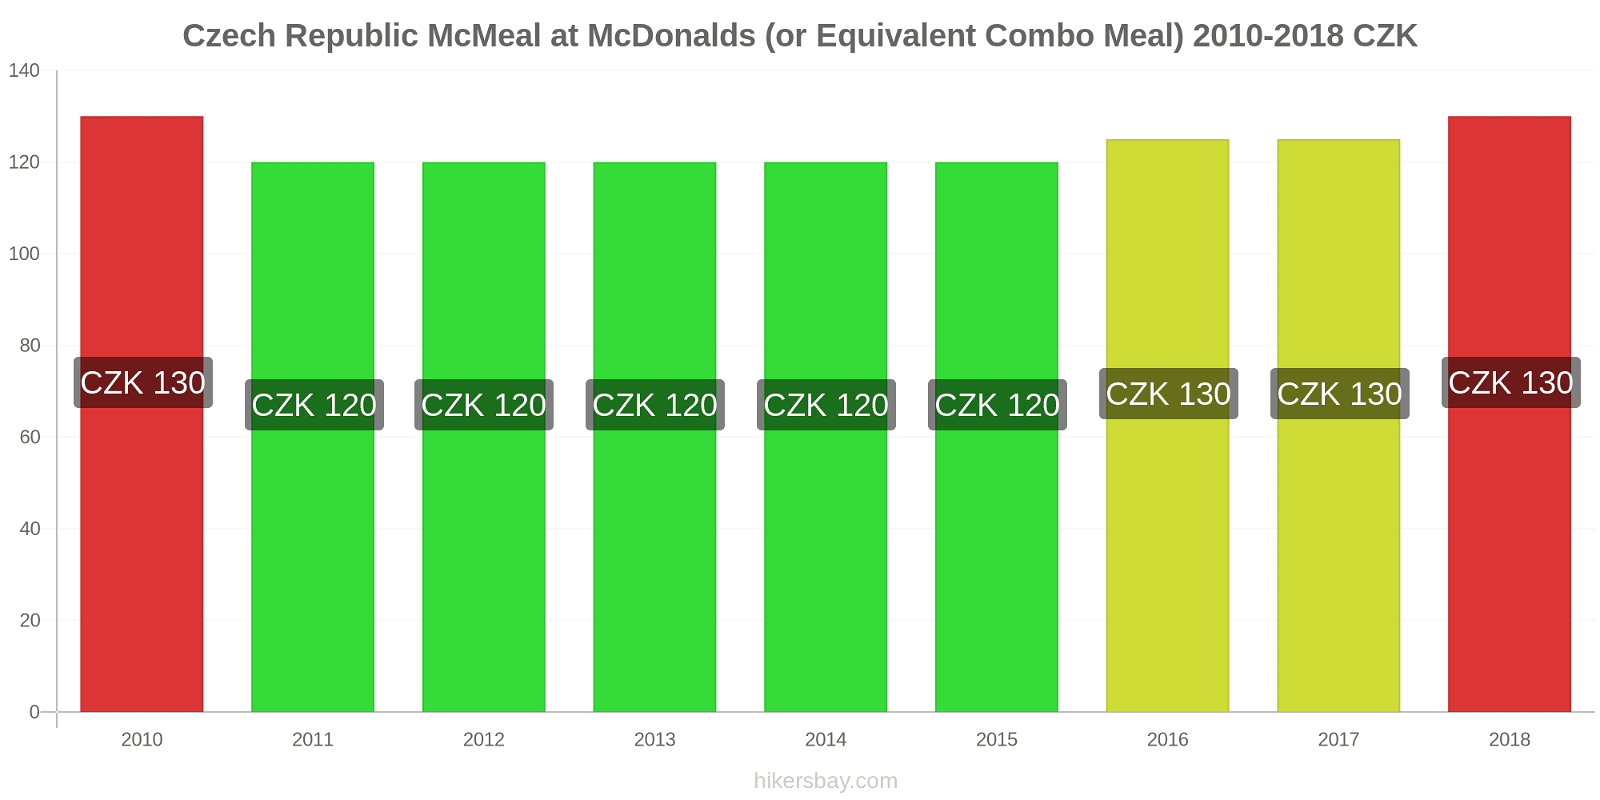 Czech Republic price changes McMeal at McDonalds (or Equivalent Combo Meal) hikersbay.com